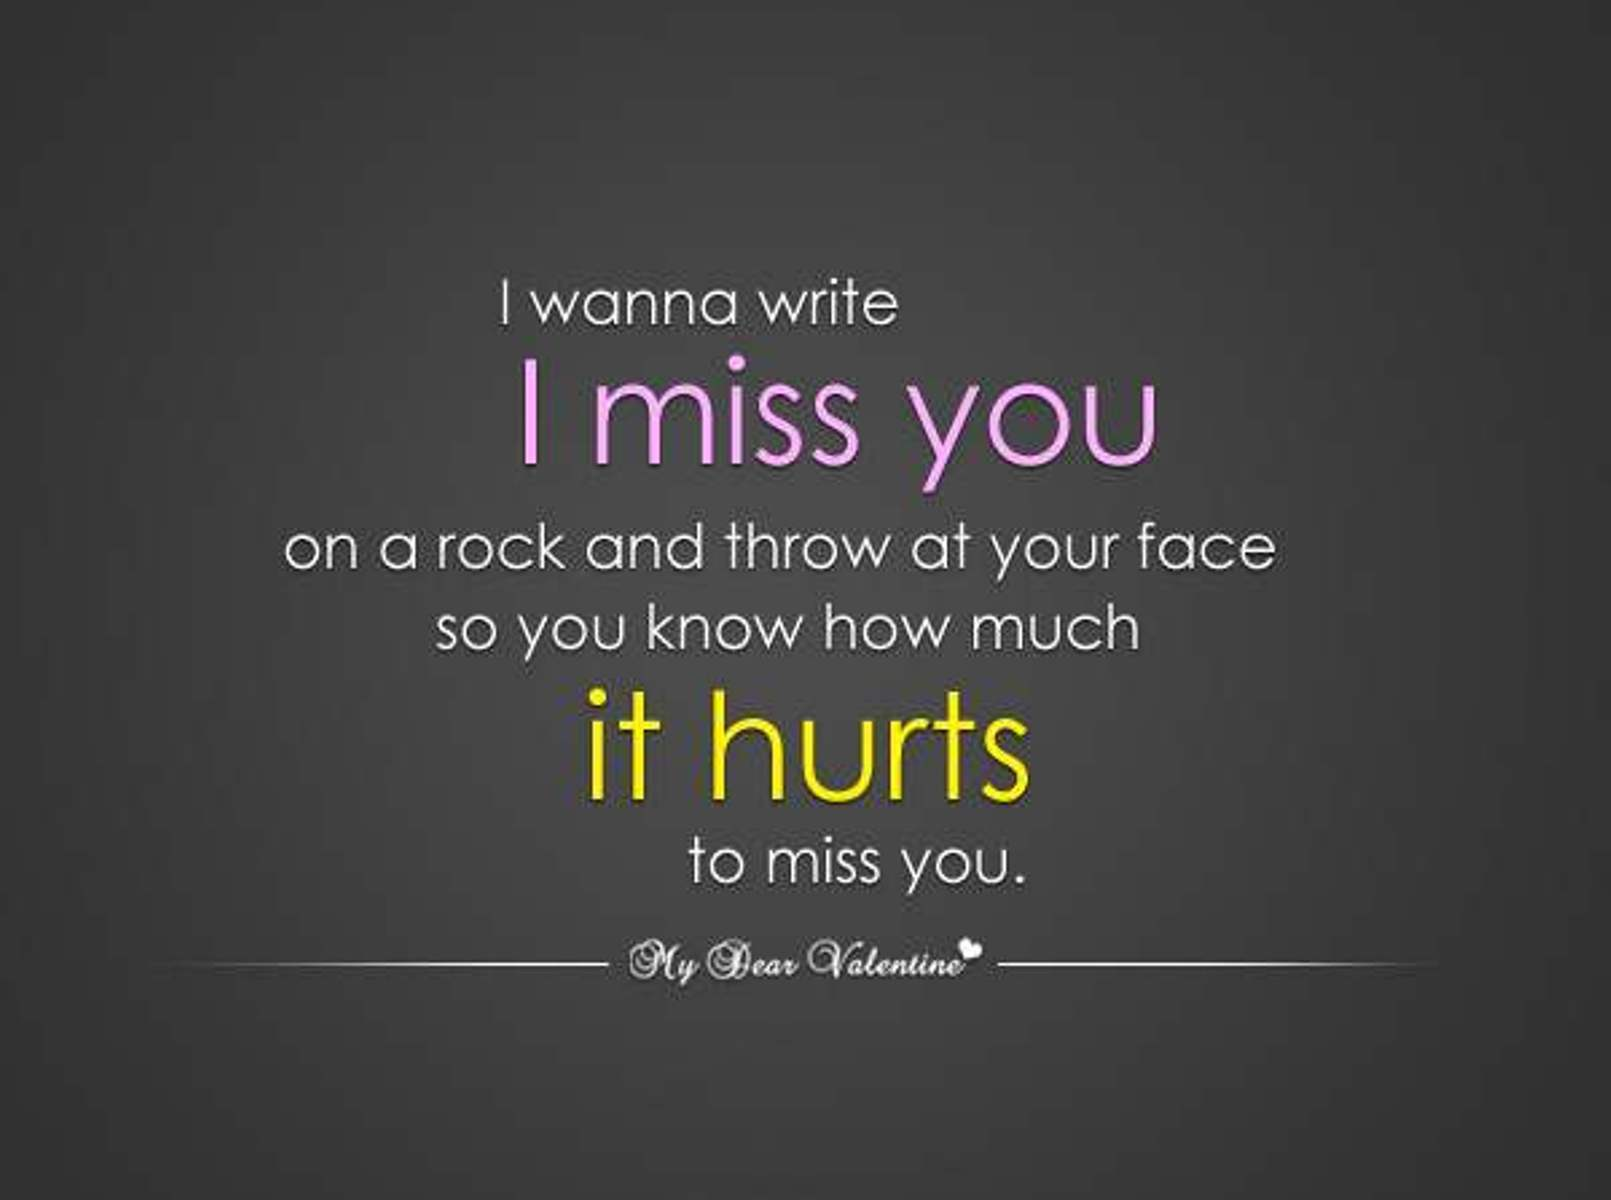 I Love You Quotes For Your Boyfriend : 52 I Love You Quotes for Him